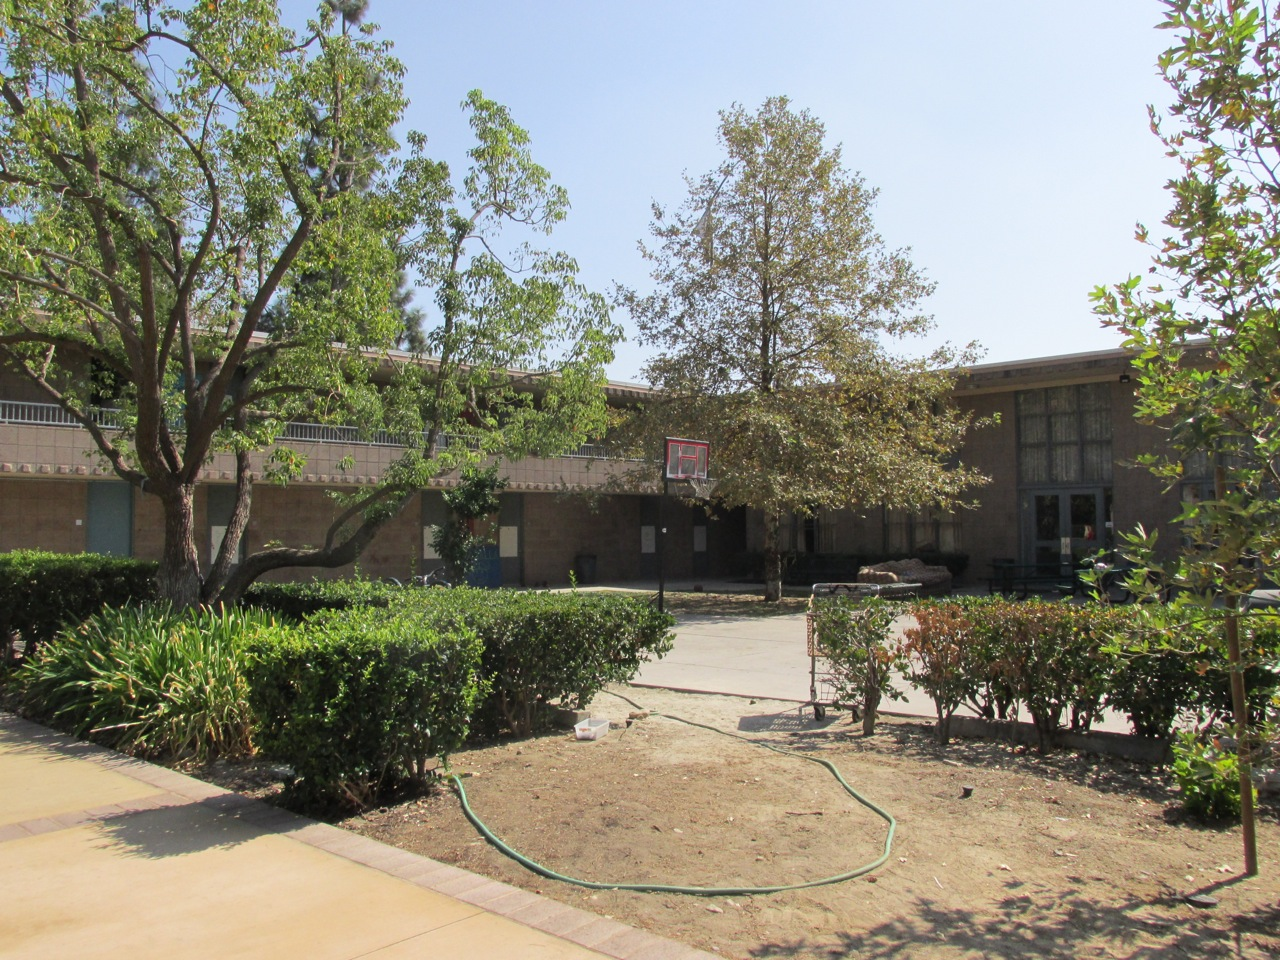 West Dorm courtyard.